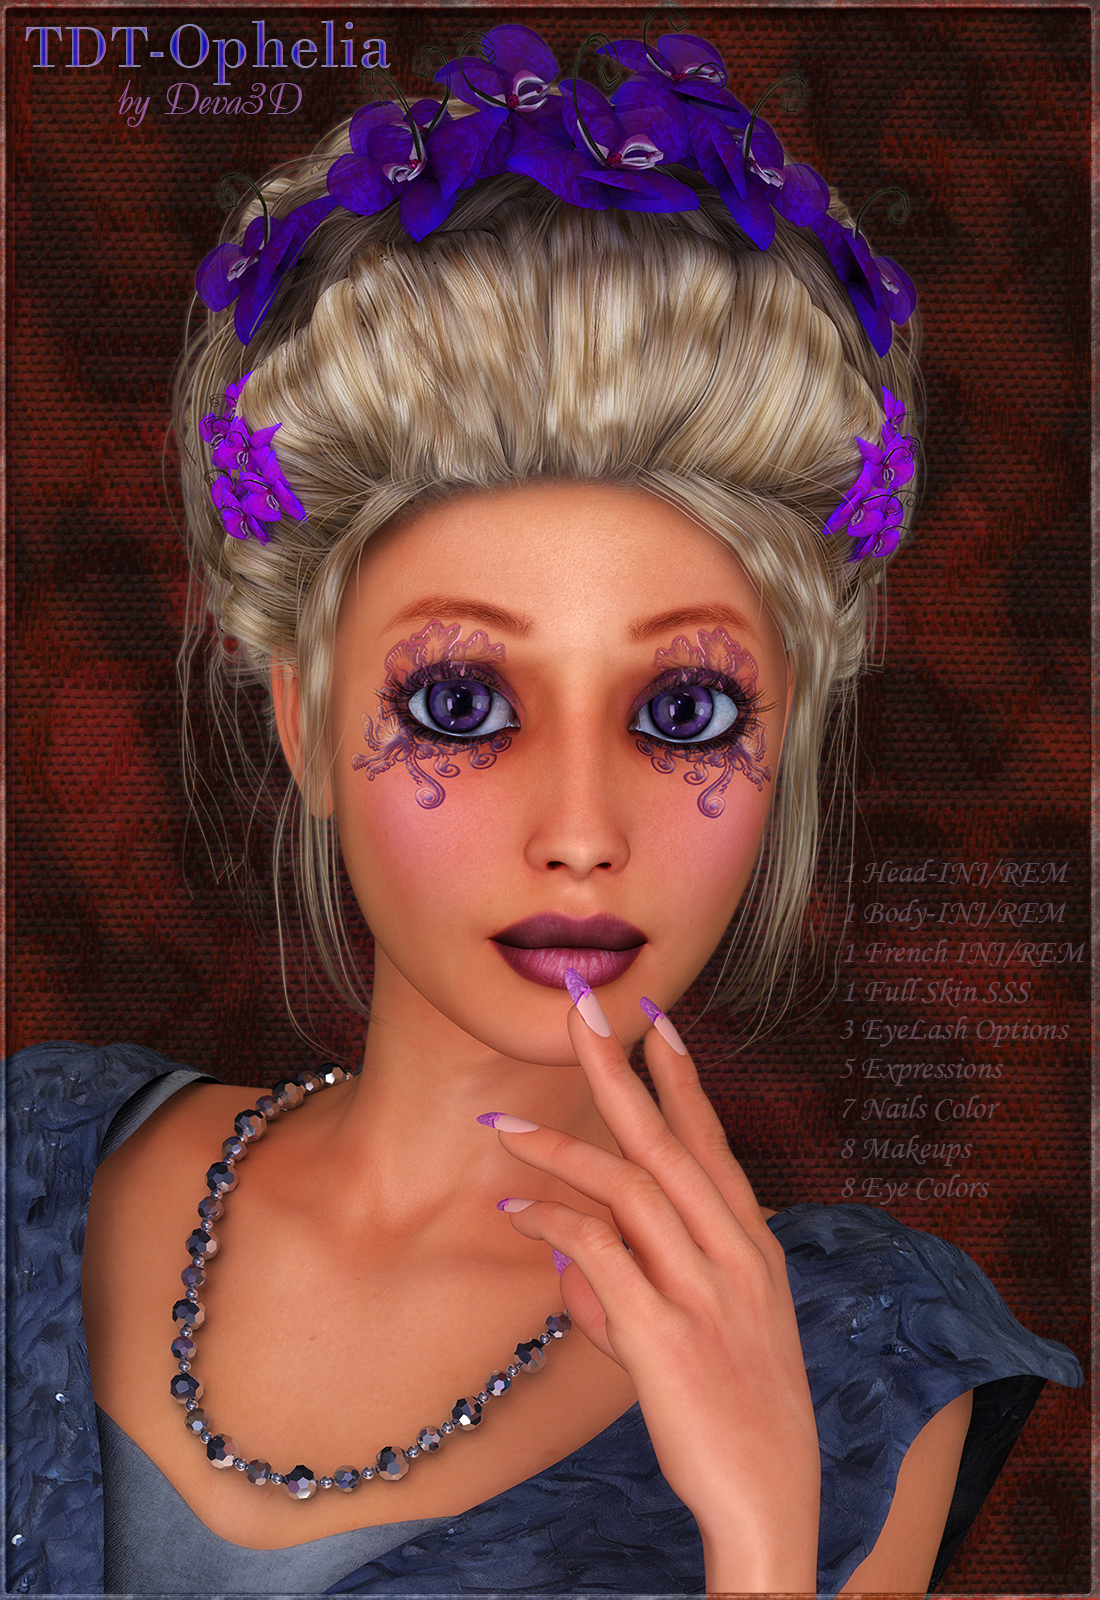 TDT-Ophelia for Victoria 4.2 by Deva3D